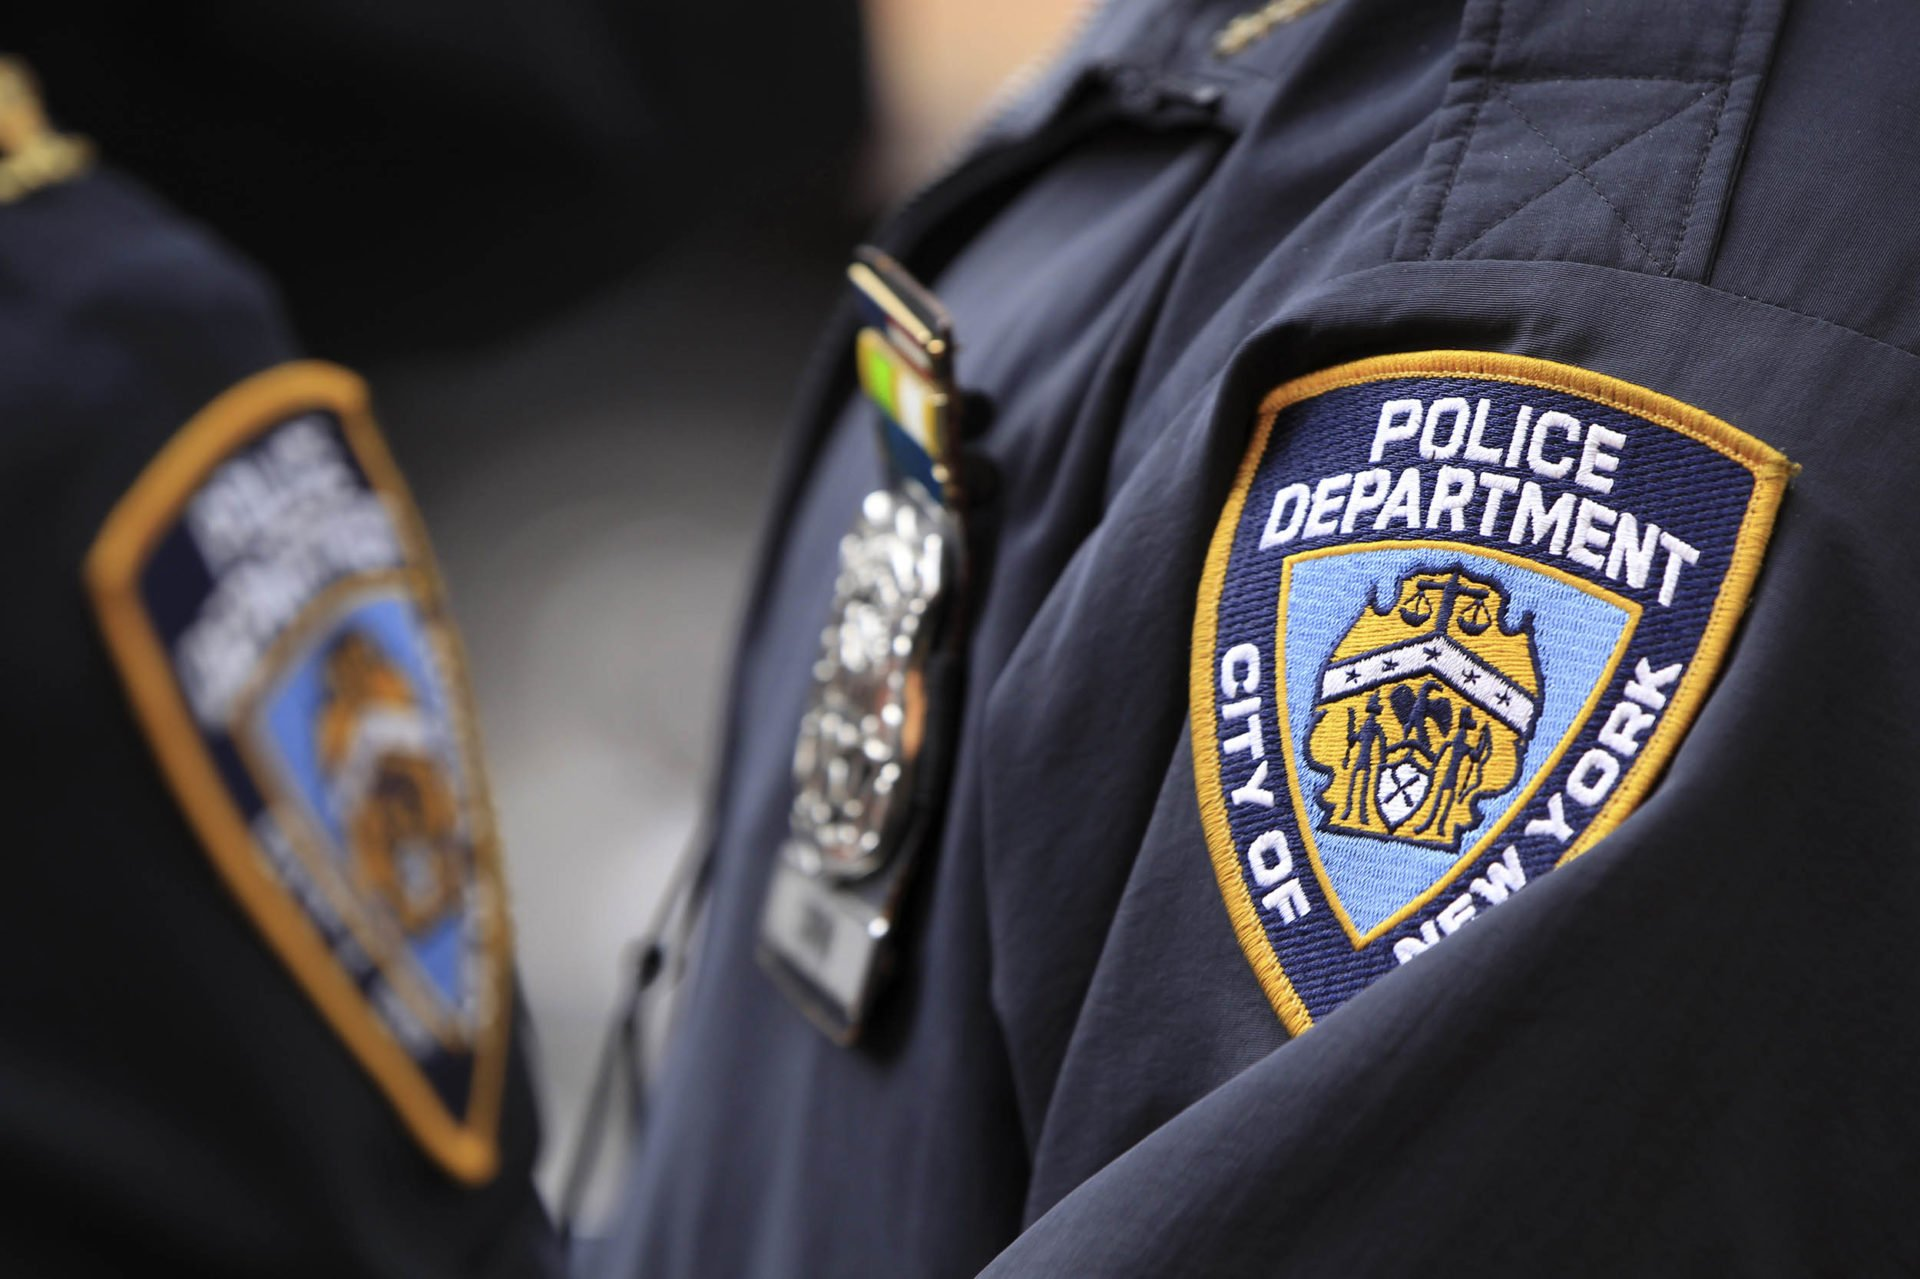 NYPD Reverses Decision to Pull Armed Officers From Schools After Overwhelming Backlash